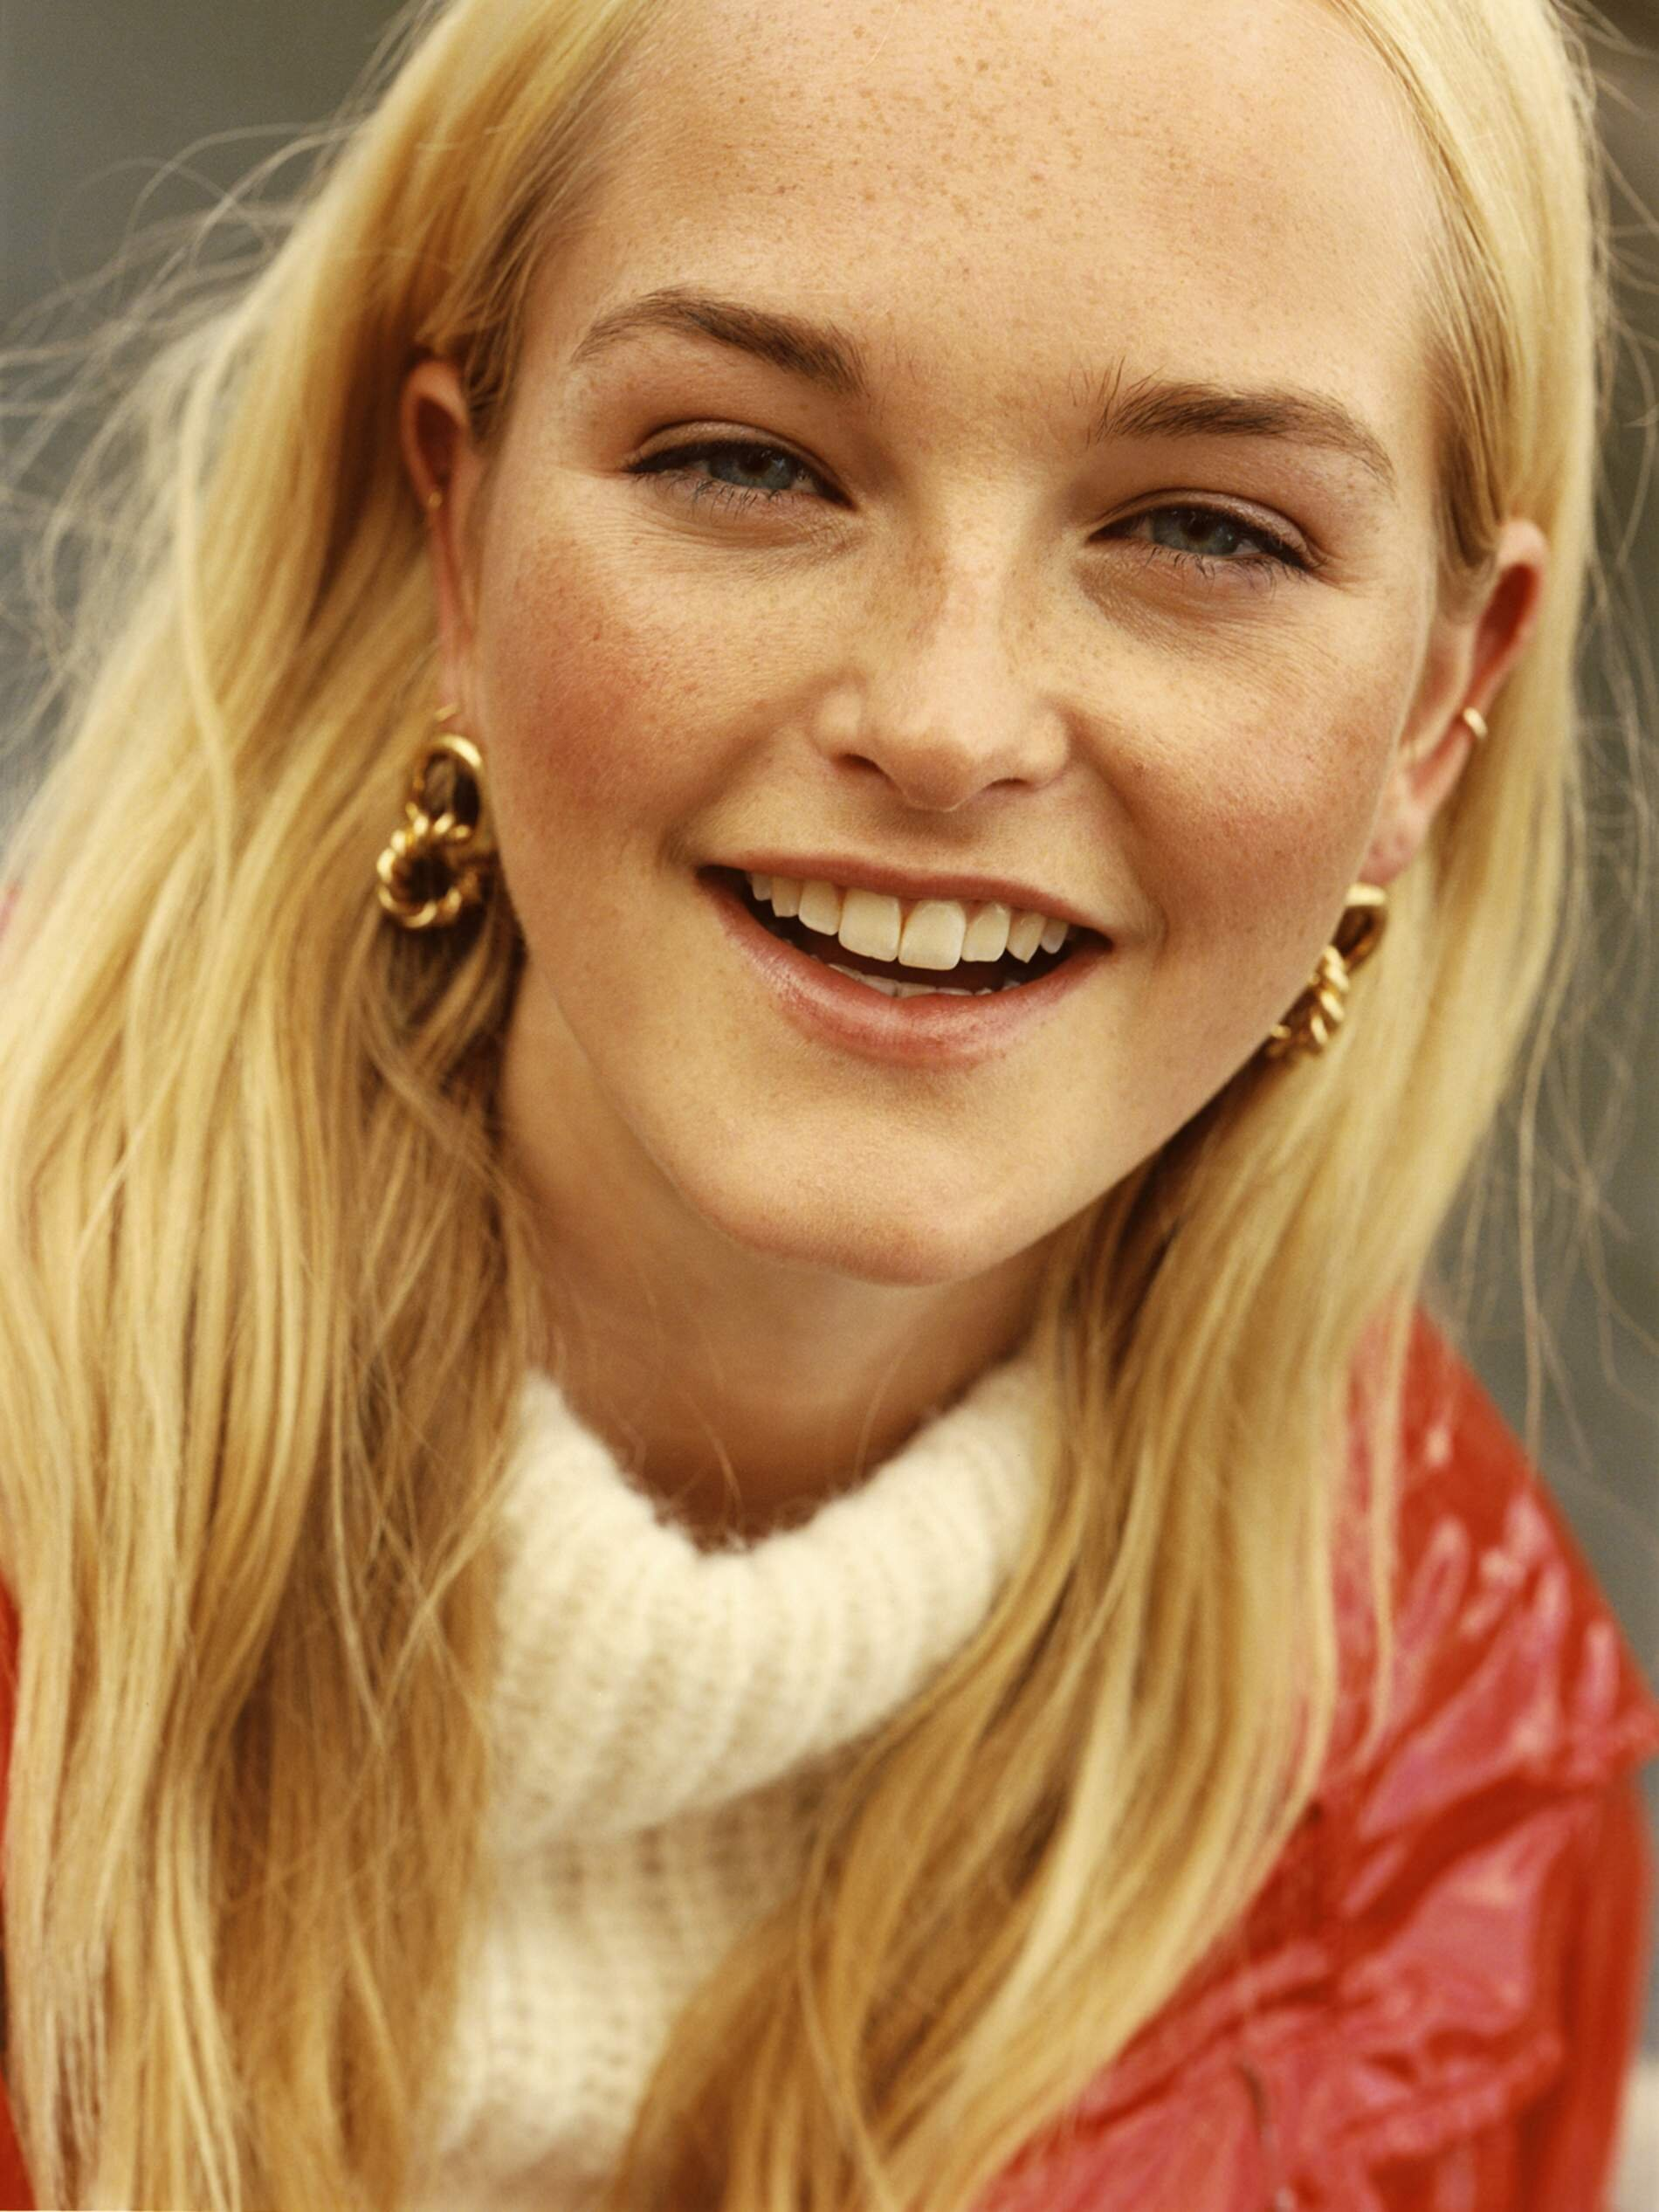 Image Jean Campbell by Quentin De Briey for Porter Edit. Coat, Balenciaga; sweater, Lauren Manoogian; earrings, Laura Lombardi; smaller earrings and ear cuff, model's own.